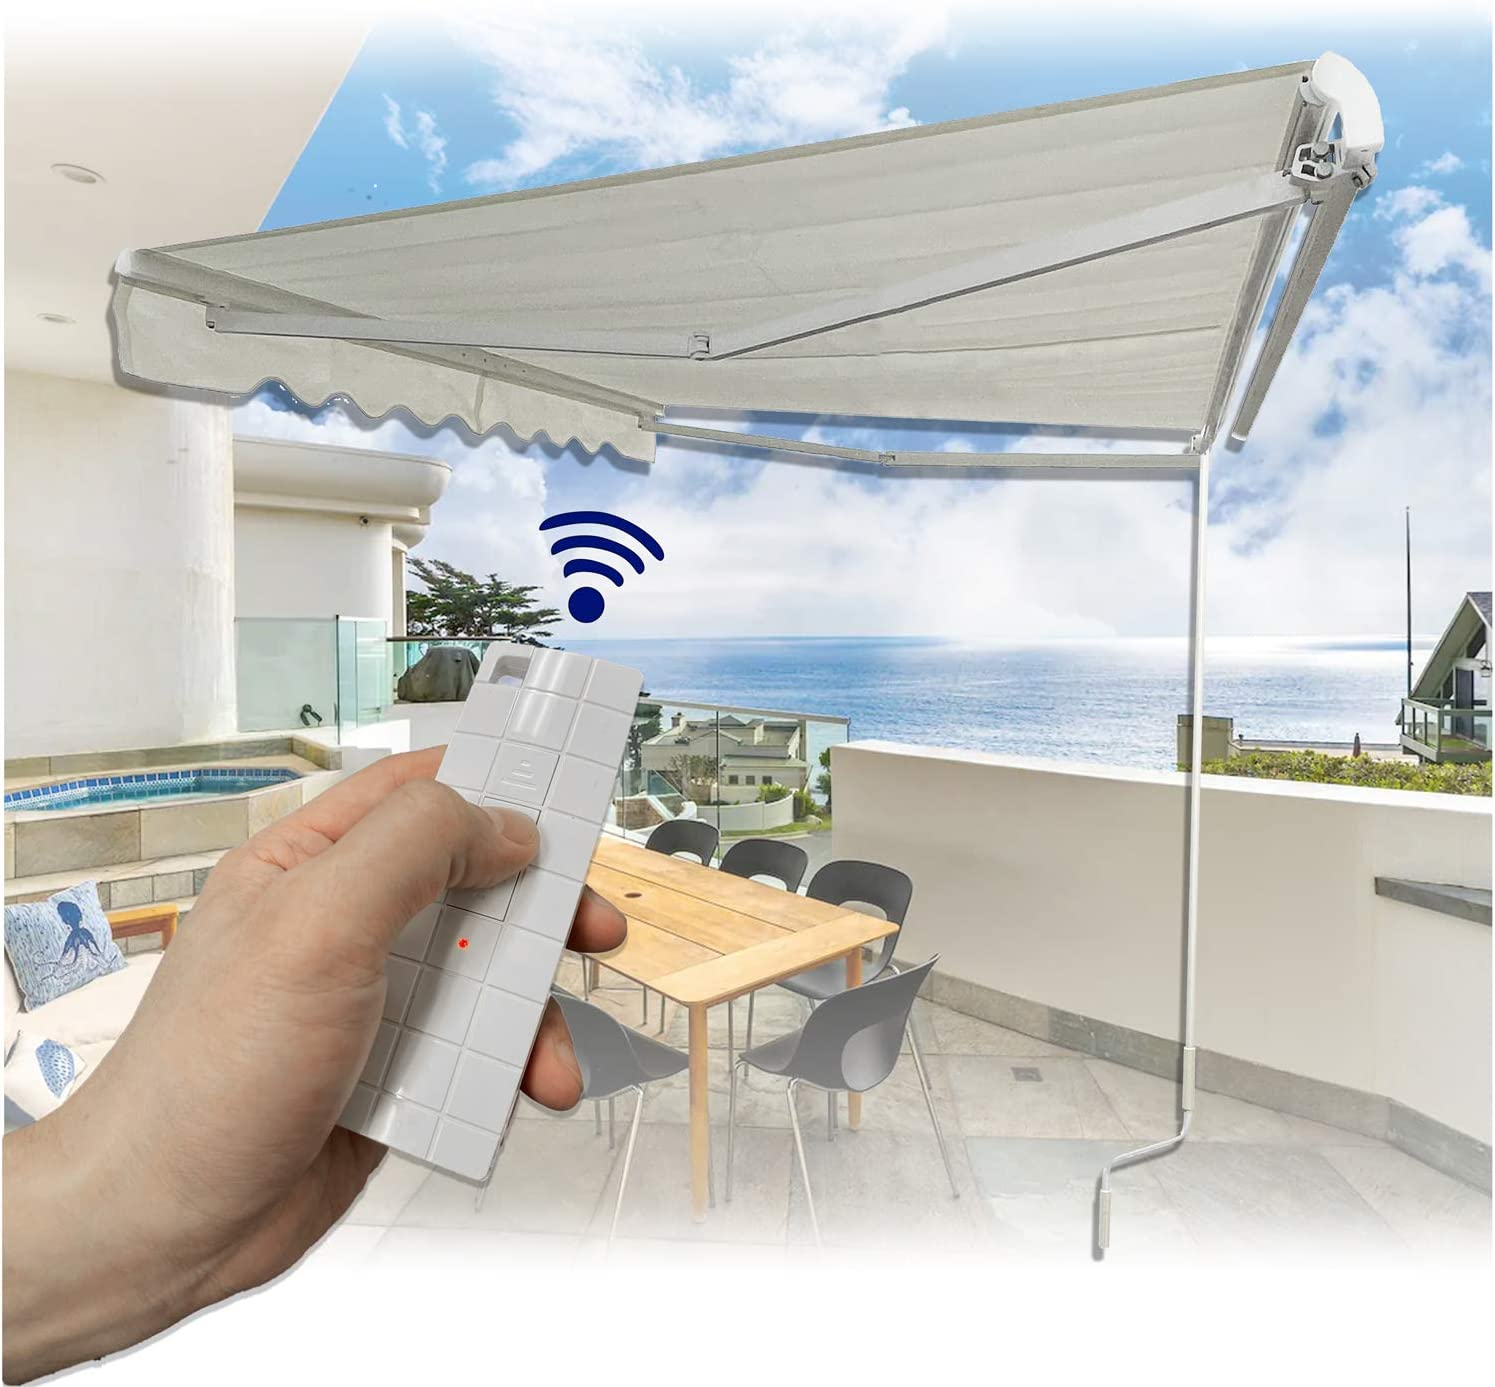 HTTMT- 11.5'×8' (Electronic w/Remote Control) Retractable Awning Aluminum Patio Sun Shade With Handle Crank Pole For Outdoor Home Motorhome RV Restaurants Travel Camper [P/N: SF-HTM11.5X8-IVORY]